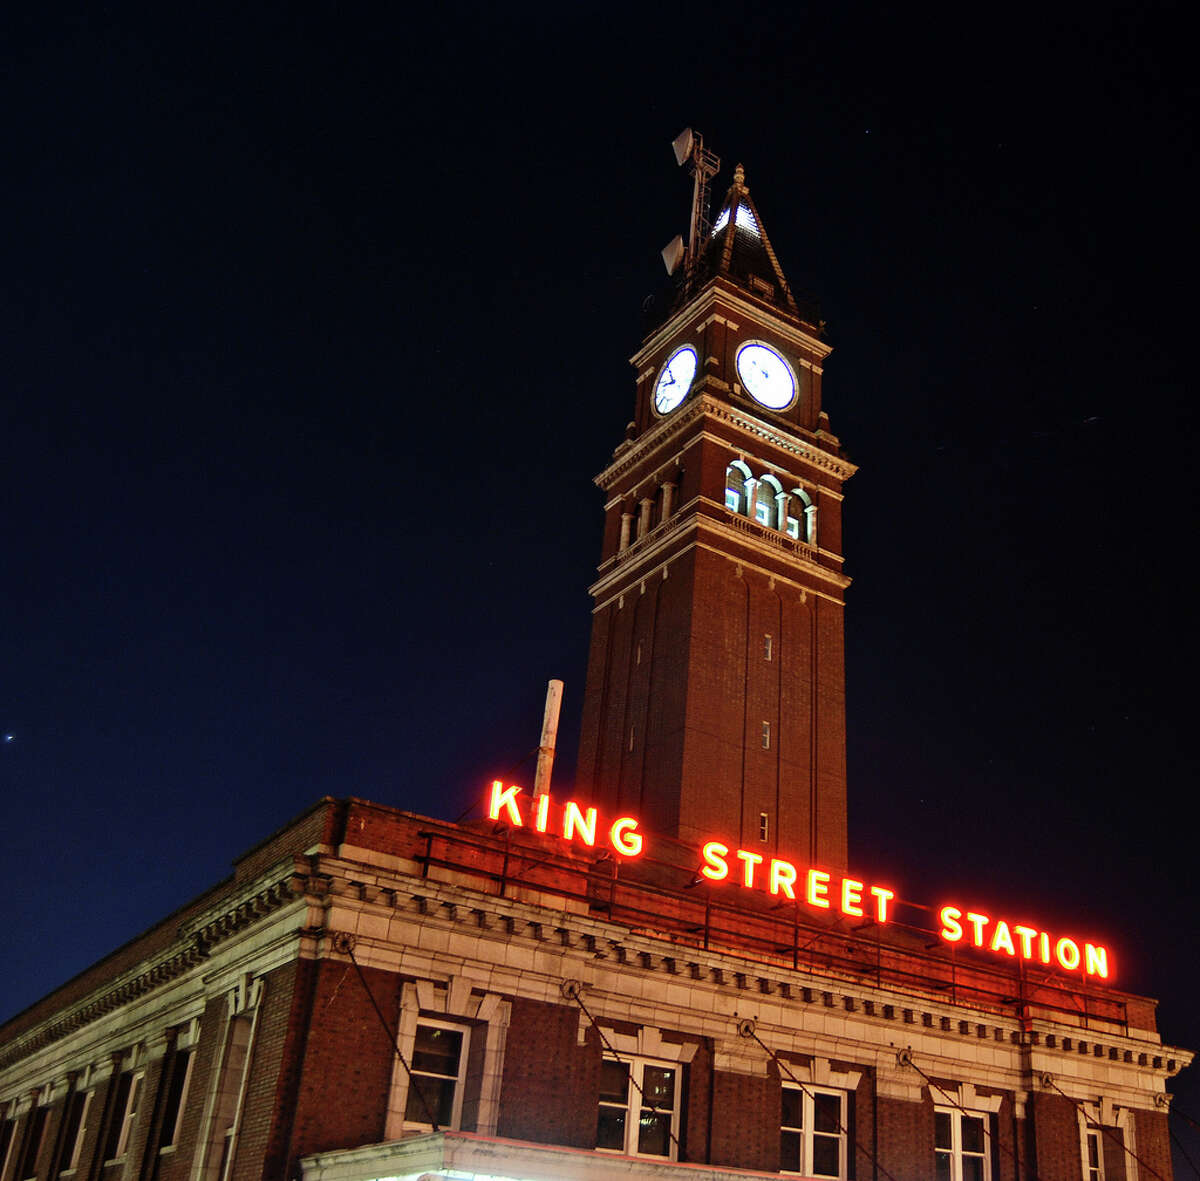 For close to half a century, Seattle's skyline was dominated by two towers: Smith Tower and the red brick clock tower of the King Street Station, modeled after the famous bell tower in Piazza San Marco in Venice,Italy.